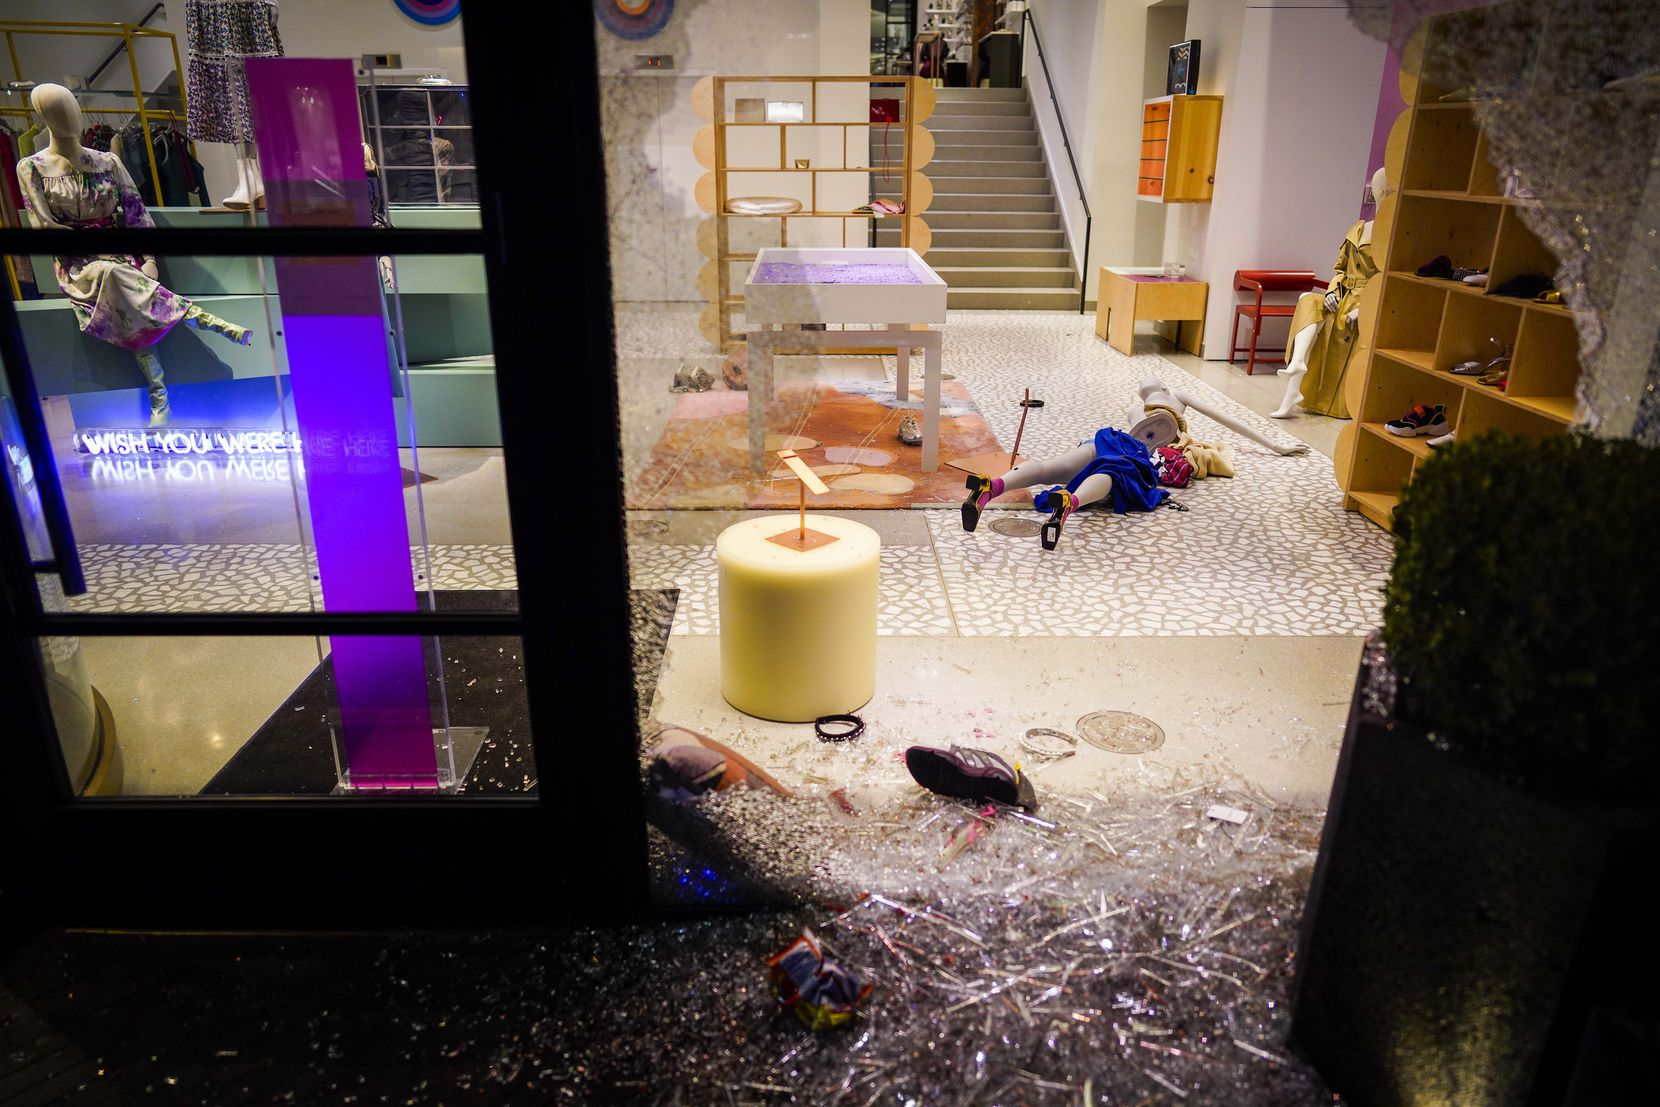 Mannequins lie amidst broken glass after windows were smashed at the Forty Five Ten store following a protest against police brutality in the early morning hours of Saturday, May 30, 2020, in Dallas. The protest against police brutality was organized by Next Generation Action Network in response to the in-custody death of George Floyd in Minneapolis.